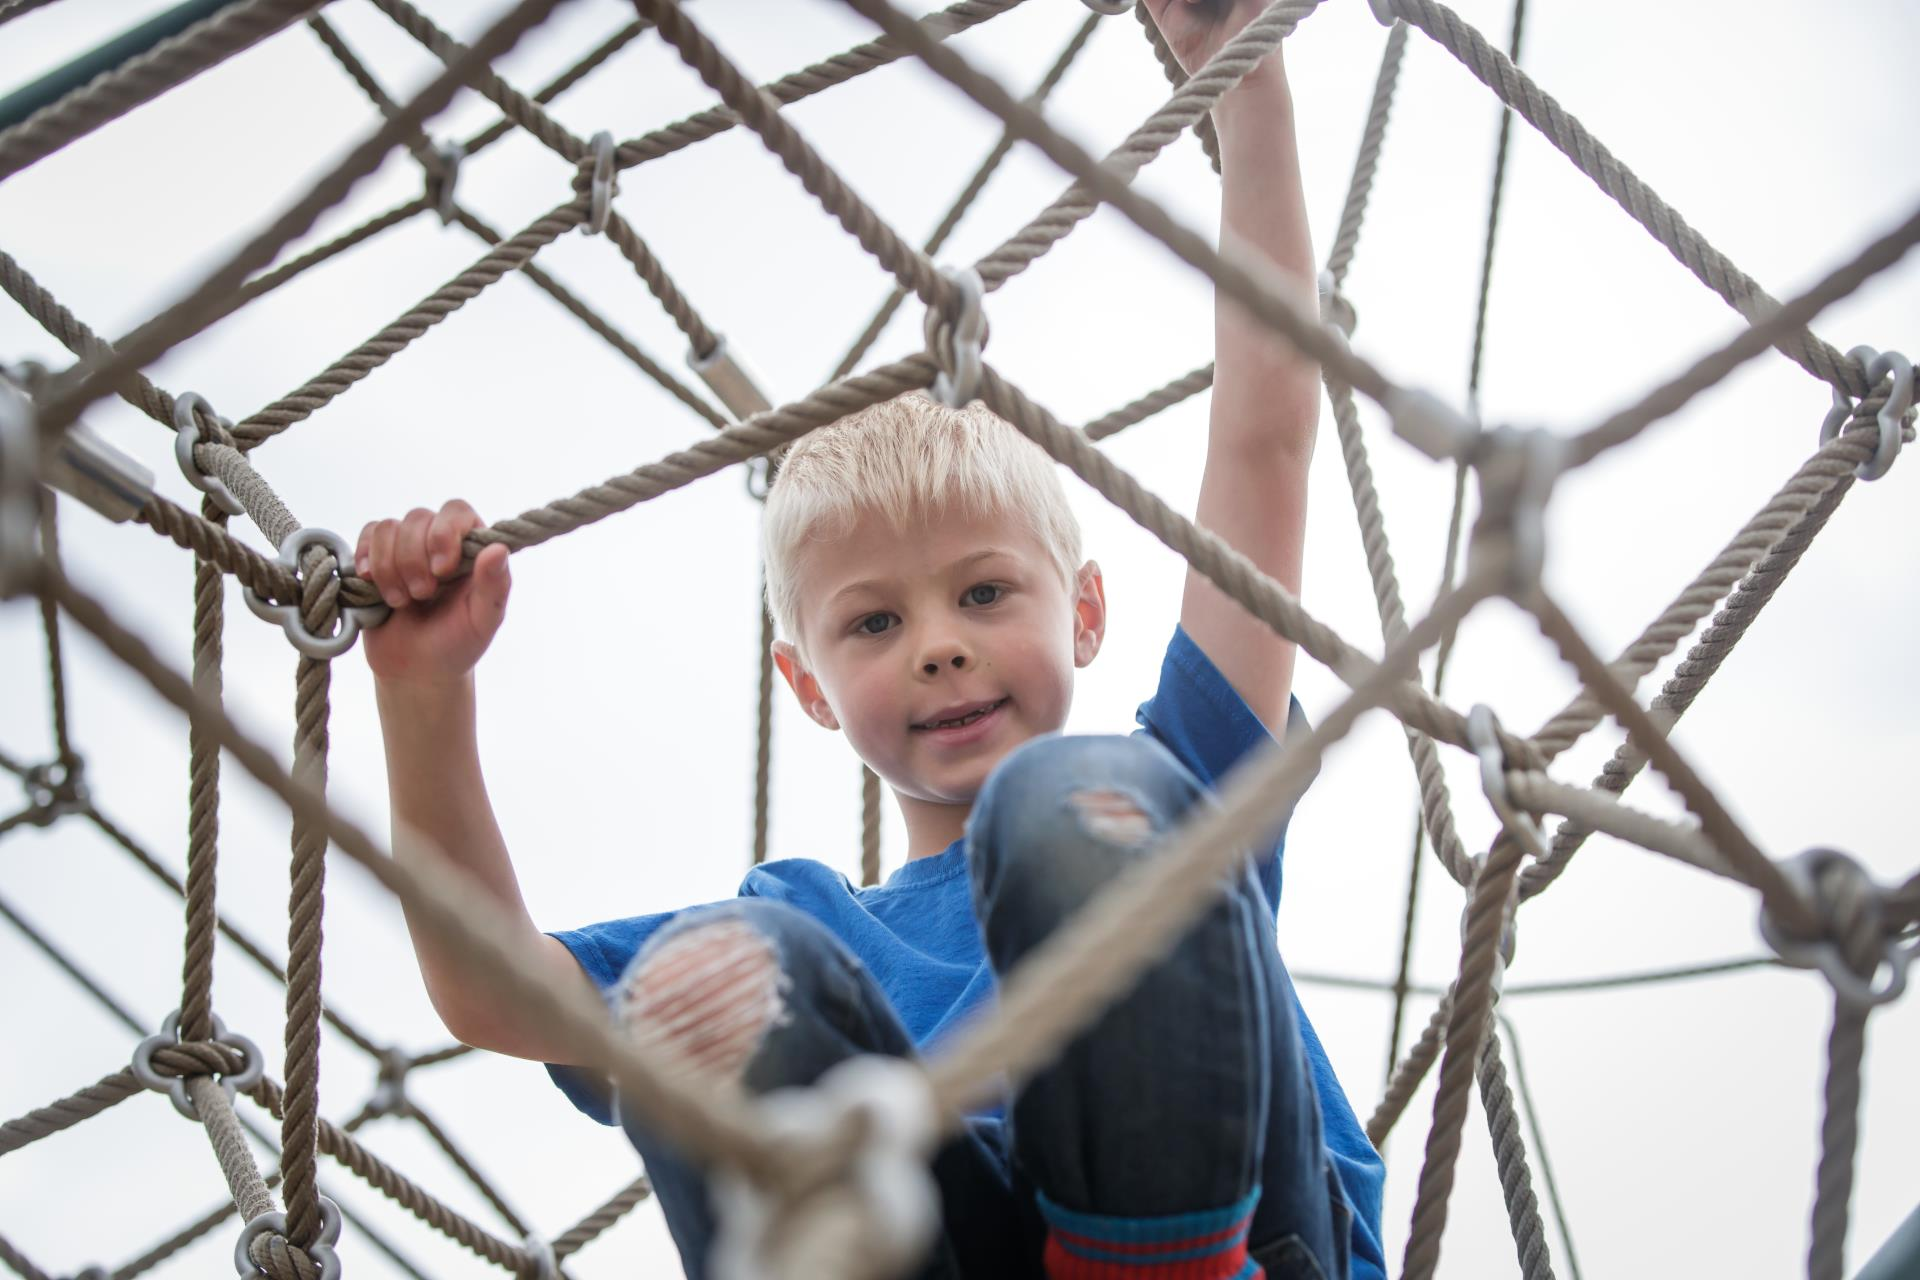 Boy on playground rope tower